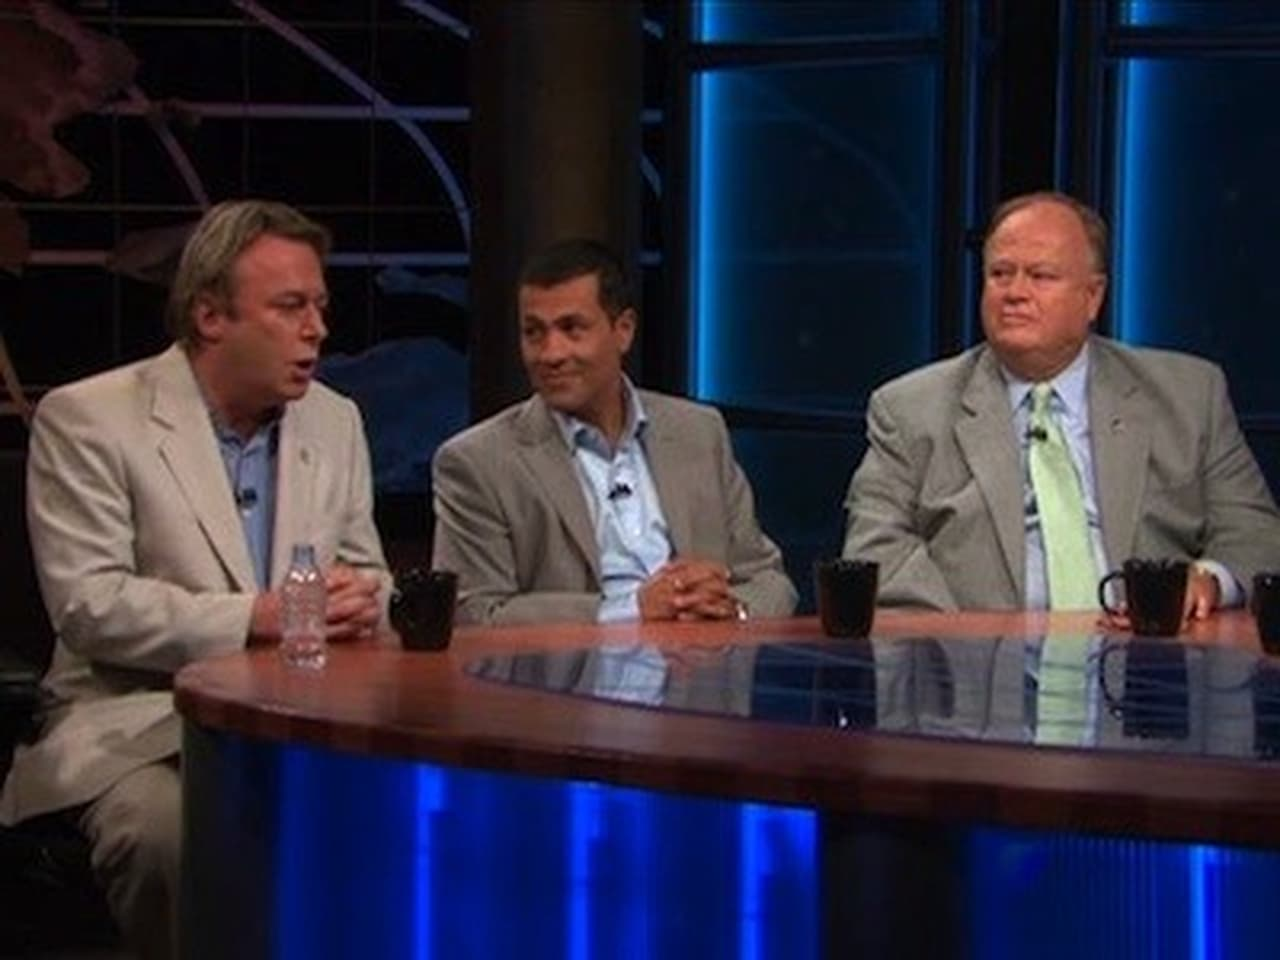 Real Time with Bill Maher - Season 4 Episode 13 : August 25, 2006